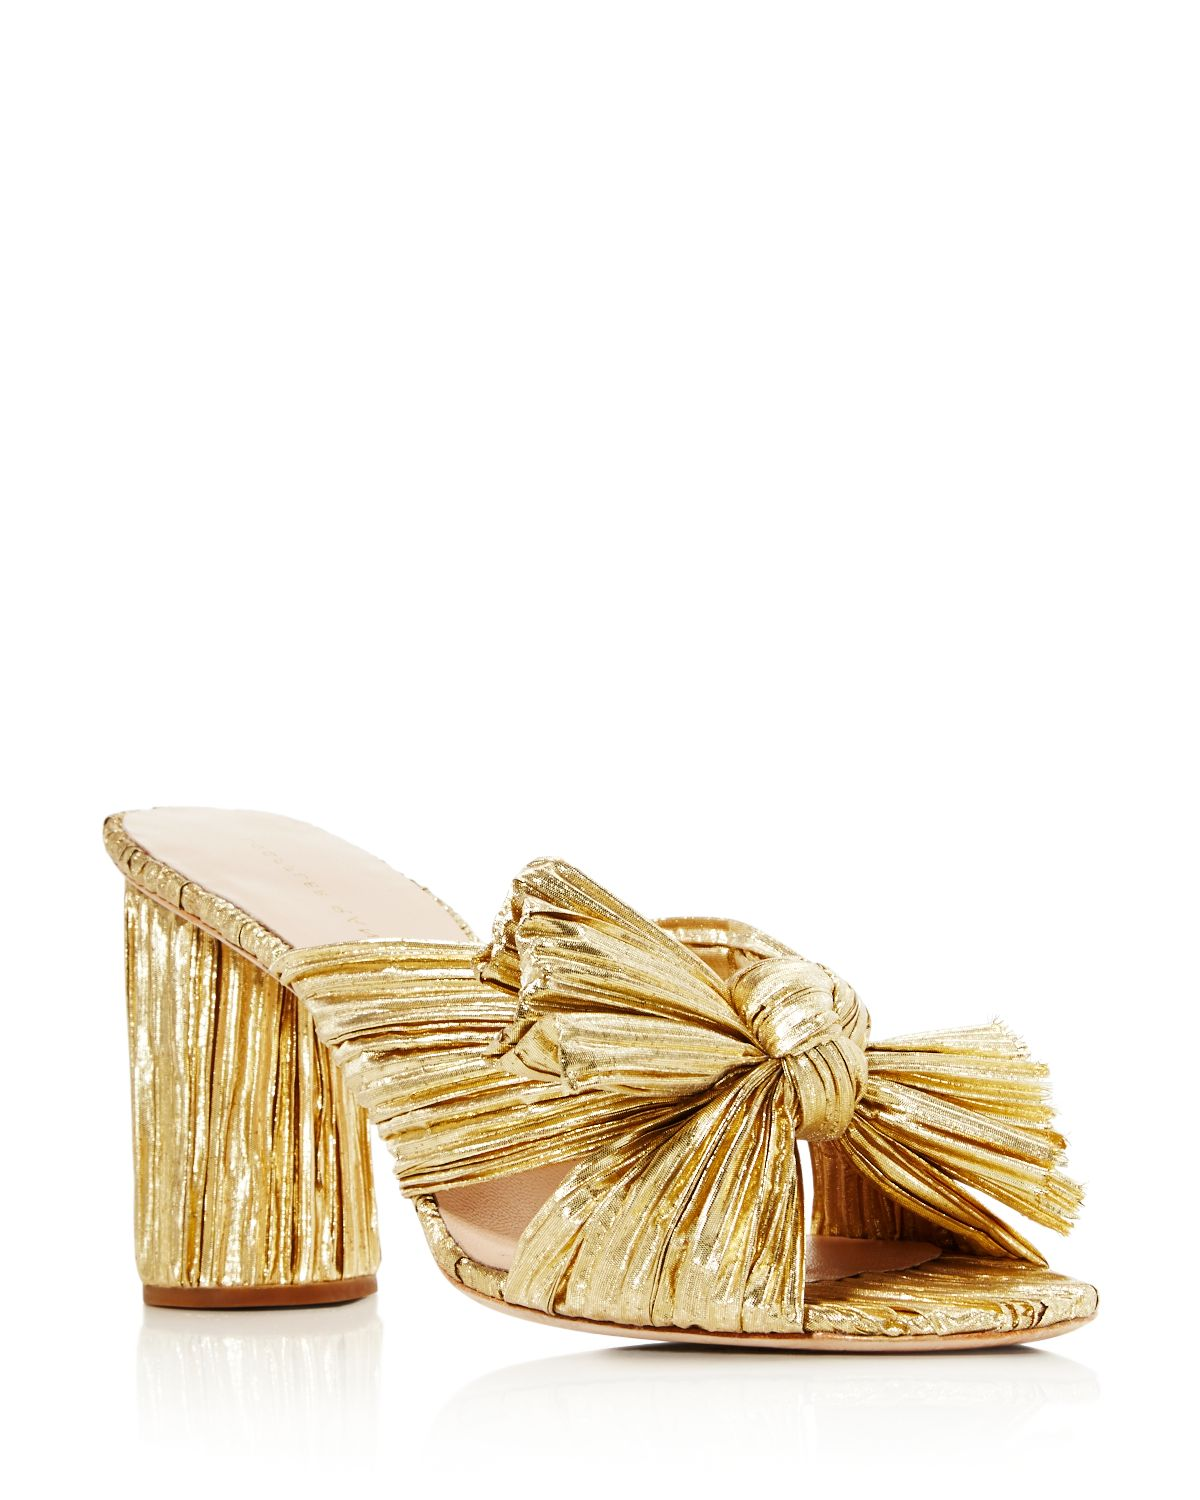 Loeffler Randall Women's Penny Pleated Metallic High-Heel Slide Sandals